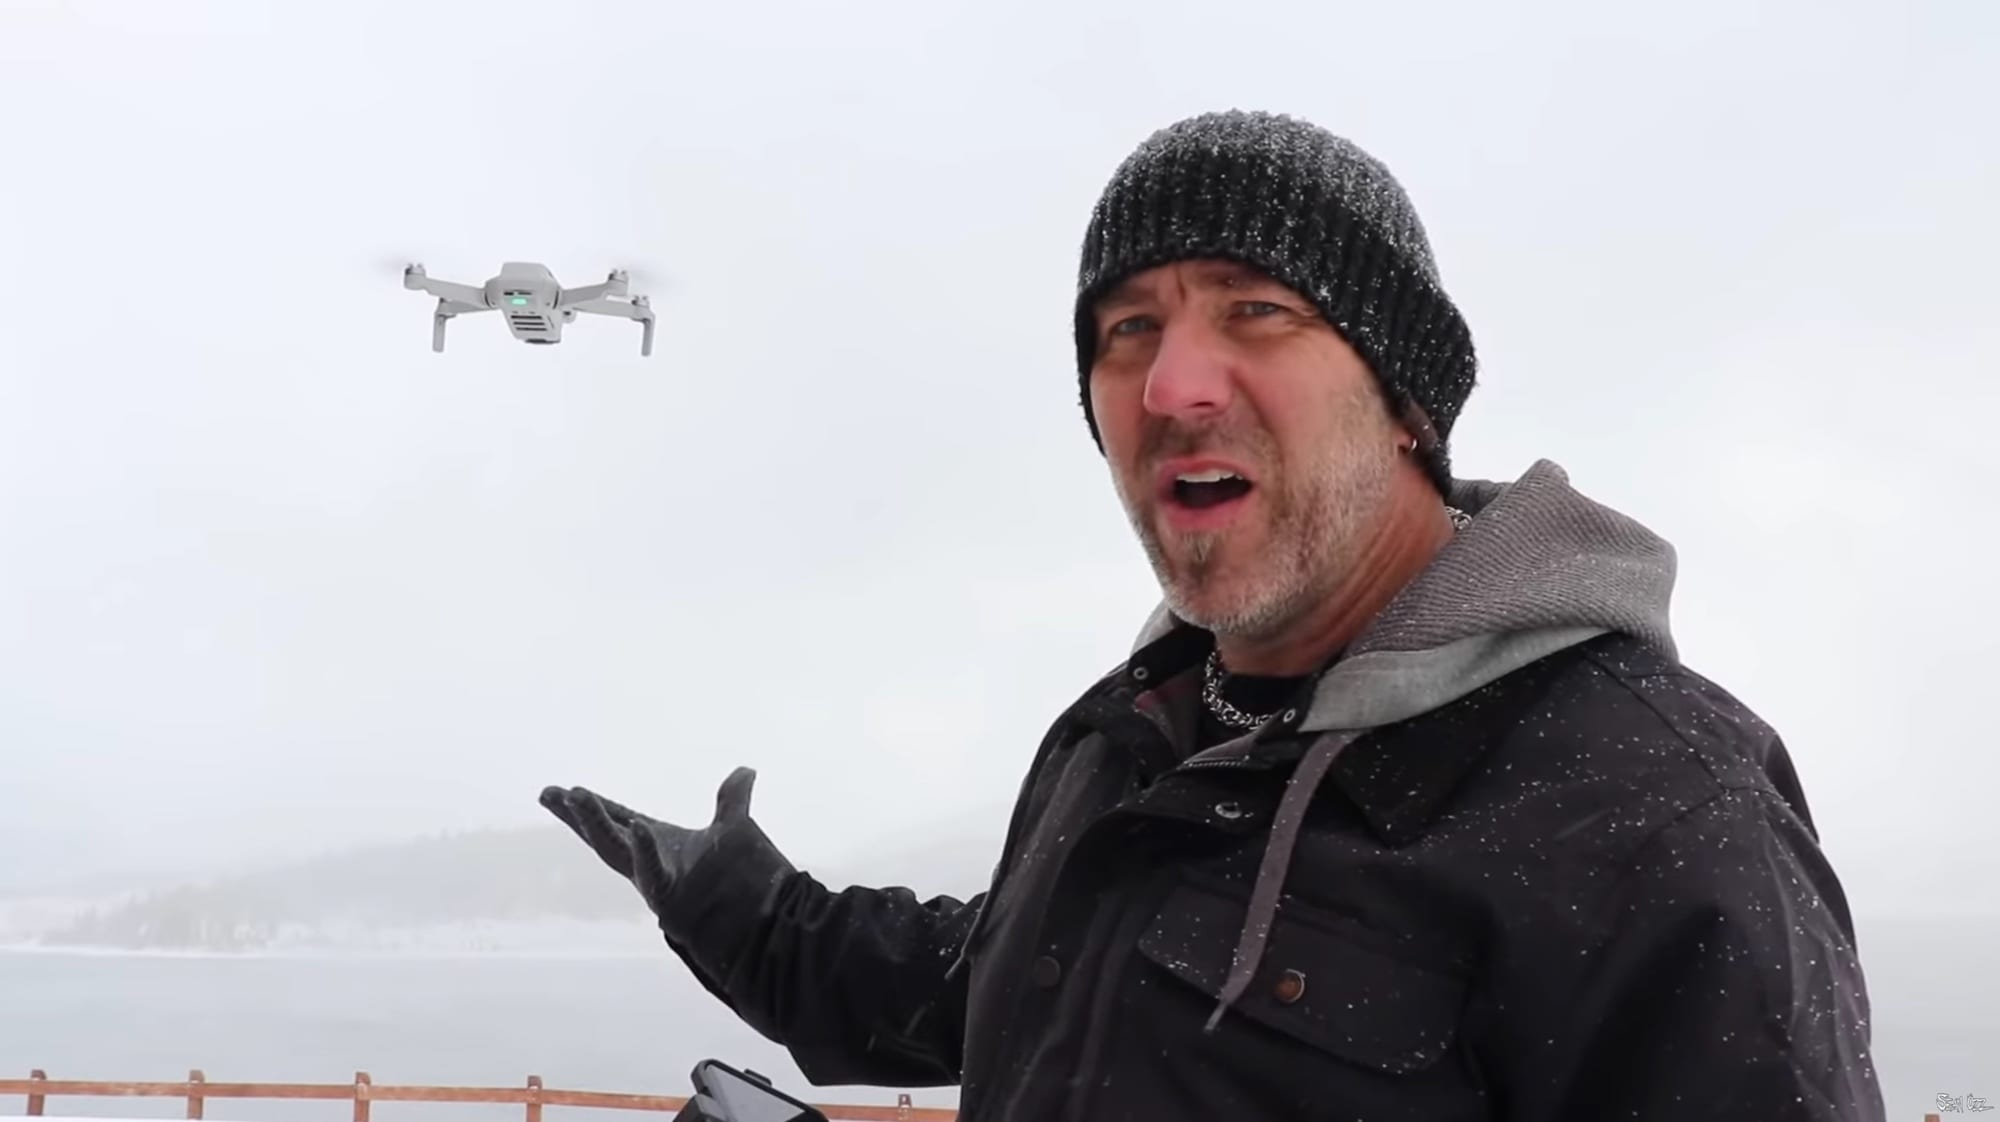 DJI Mini 2 cold-weather performance - drone outlasts one pilot